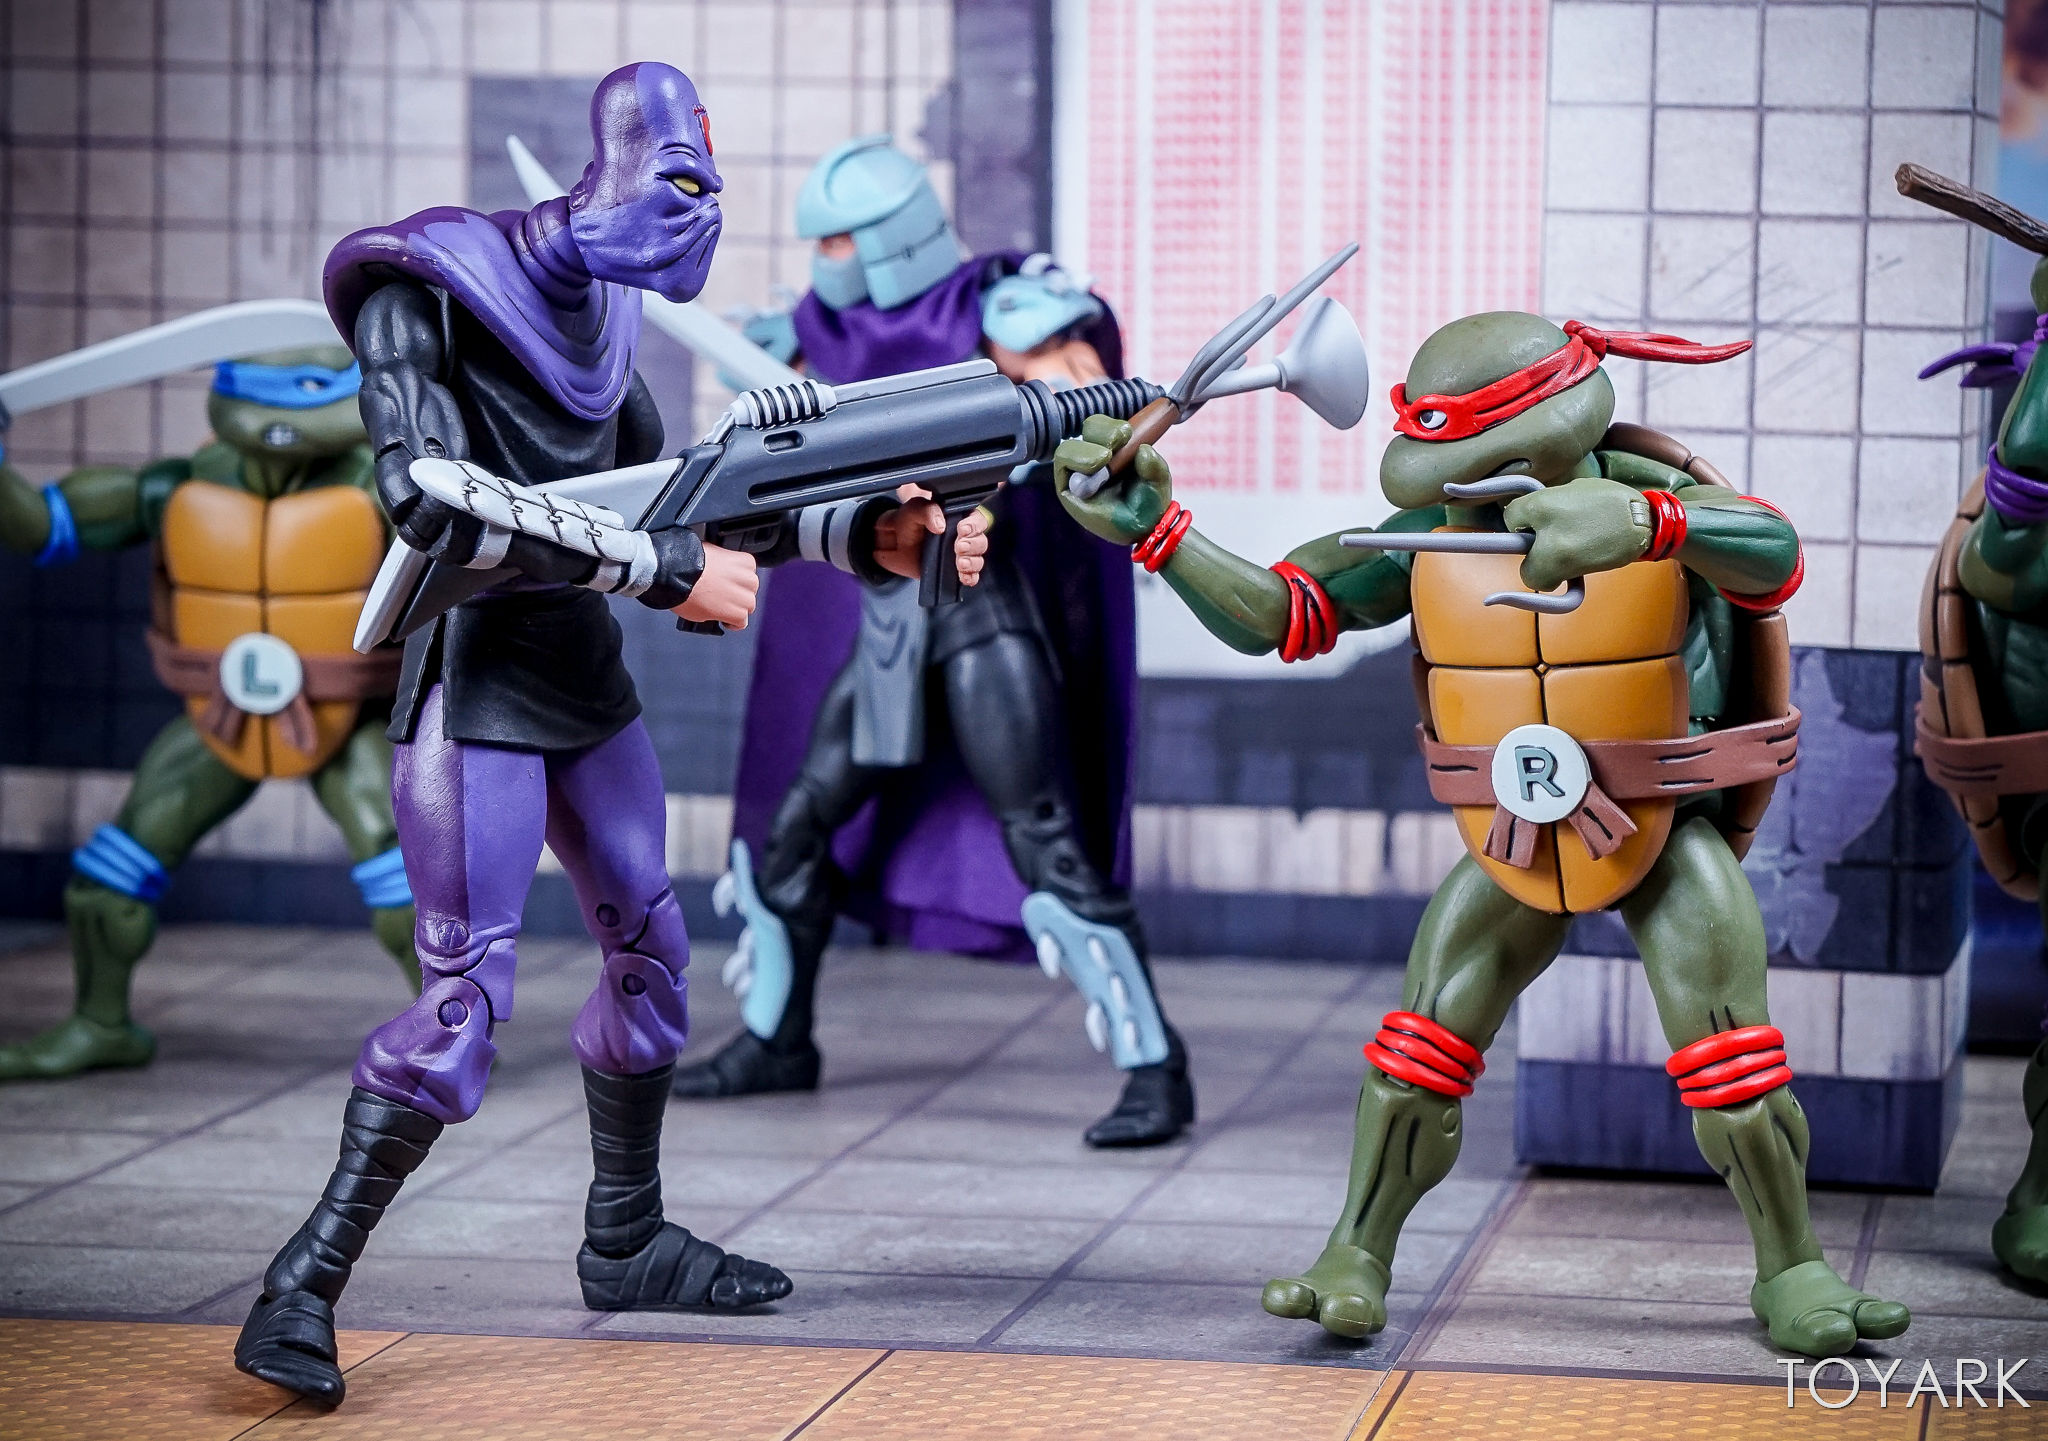 http://news.toyark.com/wp-content/uploads/sites/4/2017/07/NECA-SDCC-2017-Toon-TMNT-069.jpg